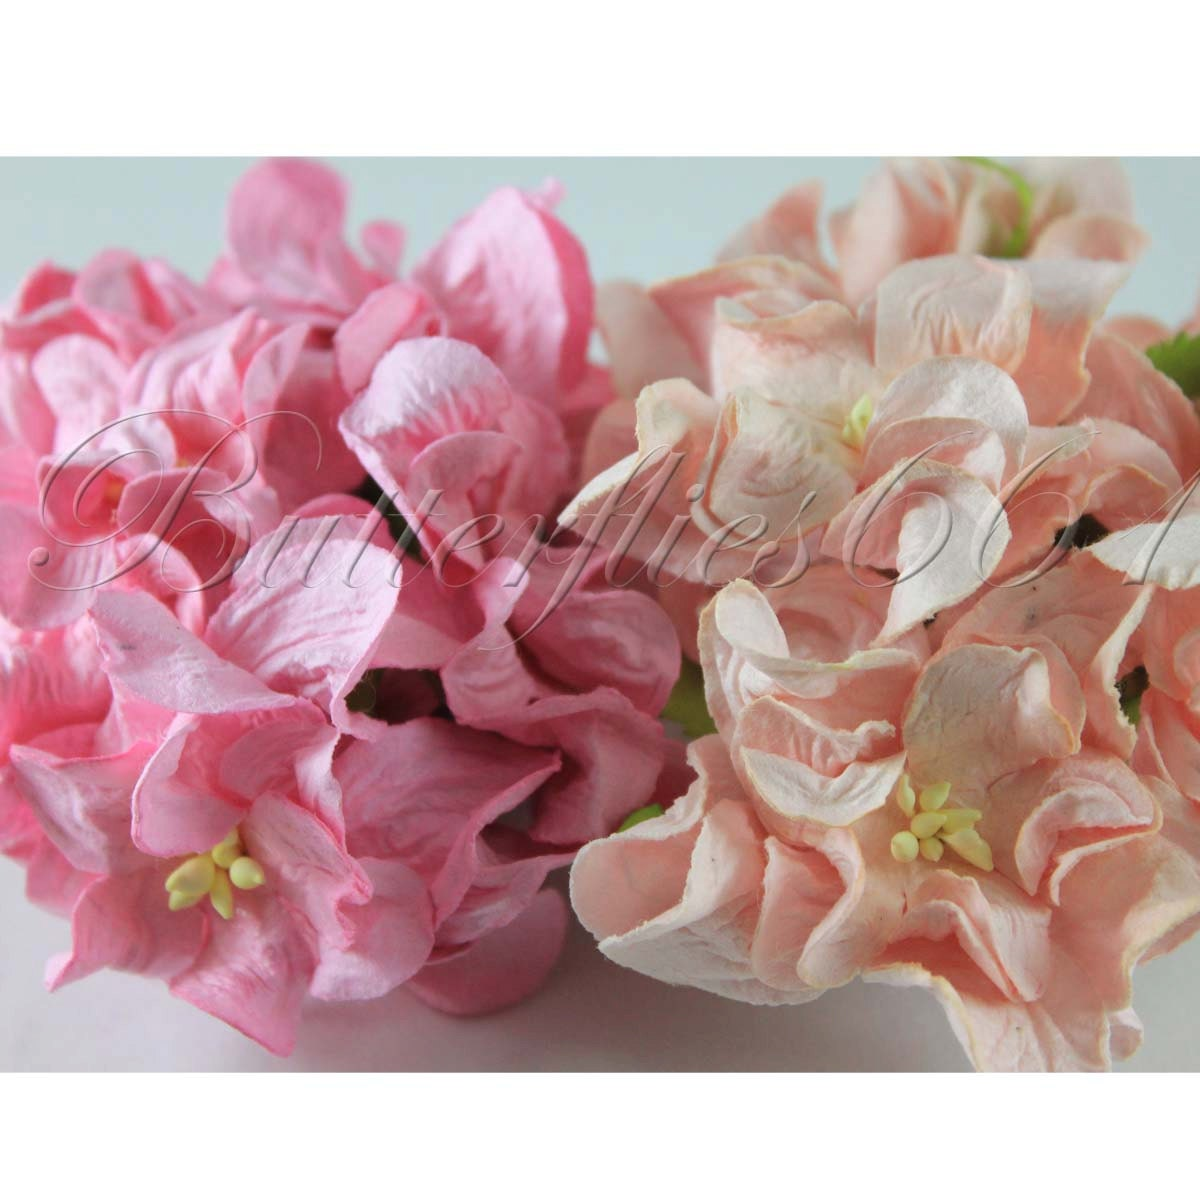 handmade mulberry paper flowers mixed pink and pale pink, Beautiful flower